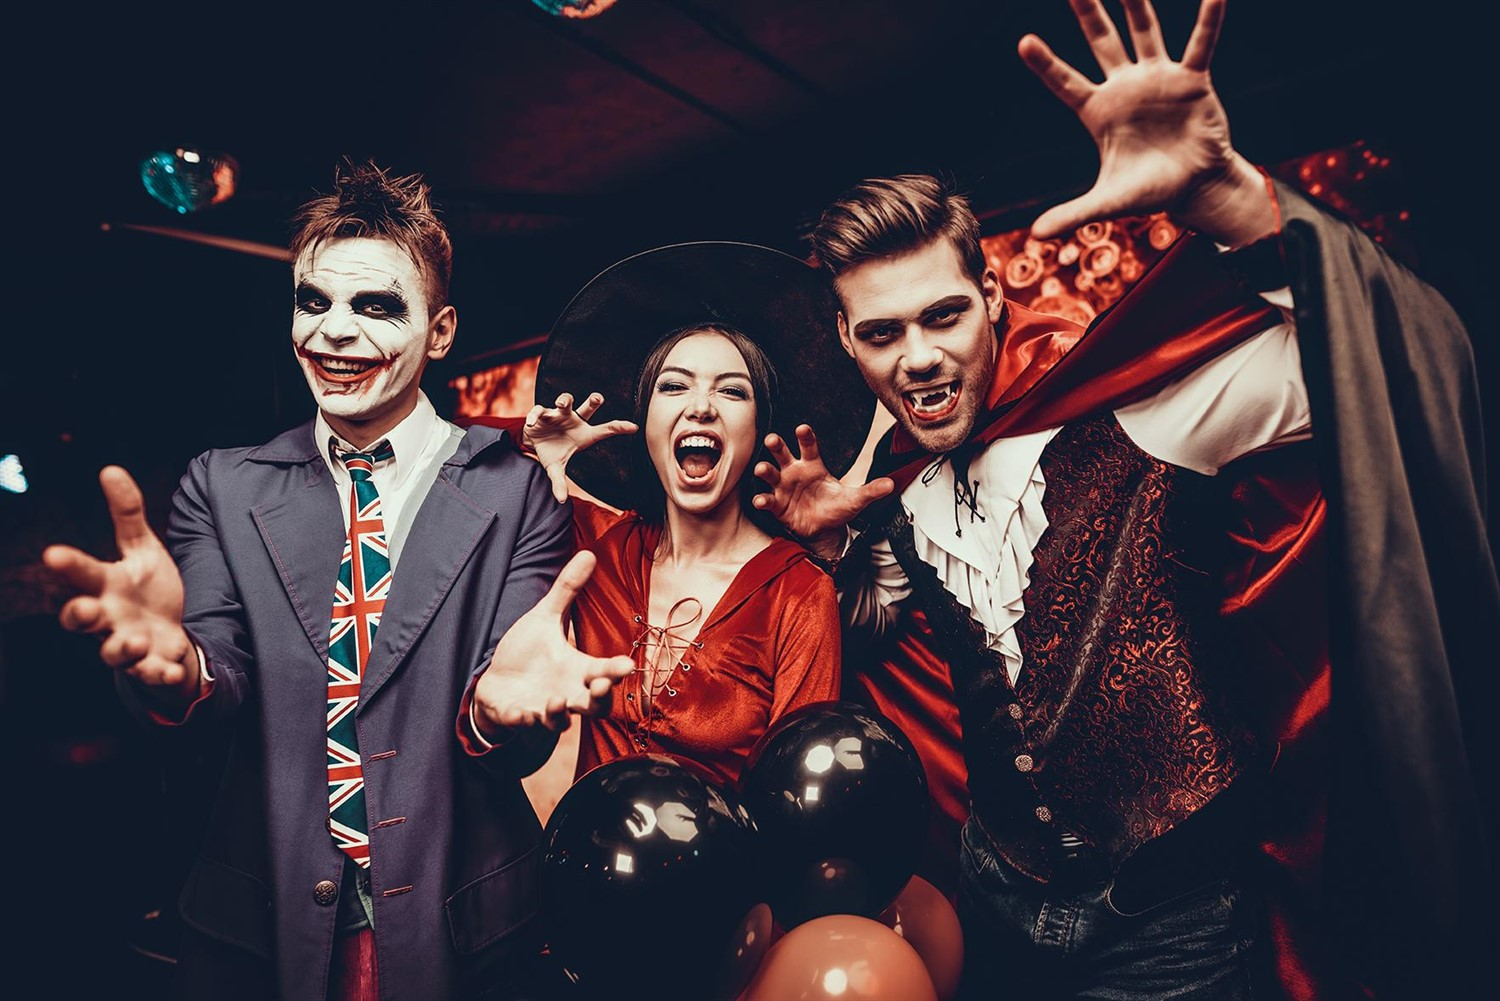 The Williamsburg Hotel Halloween Friday party 2021  on Oct 29, 18:00@williamsburg hotel - Buy tickets and Get information on GametightNY